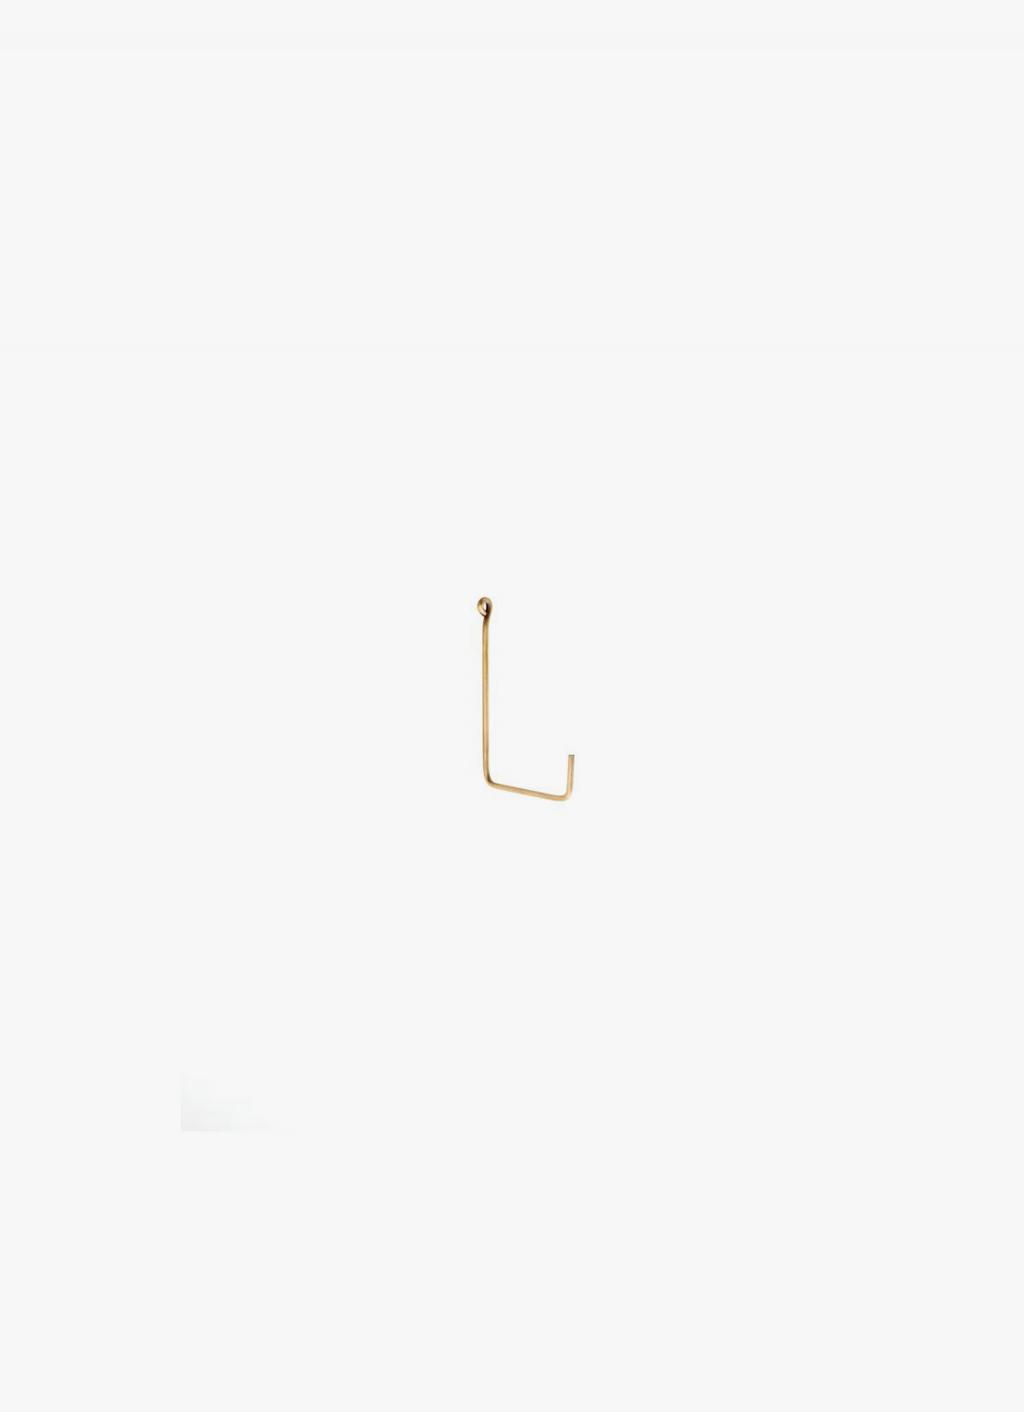 Fog Linen Work - Single hook - brass